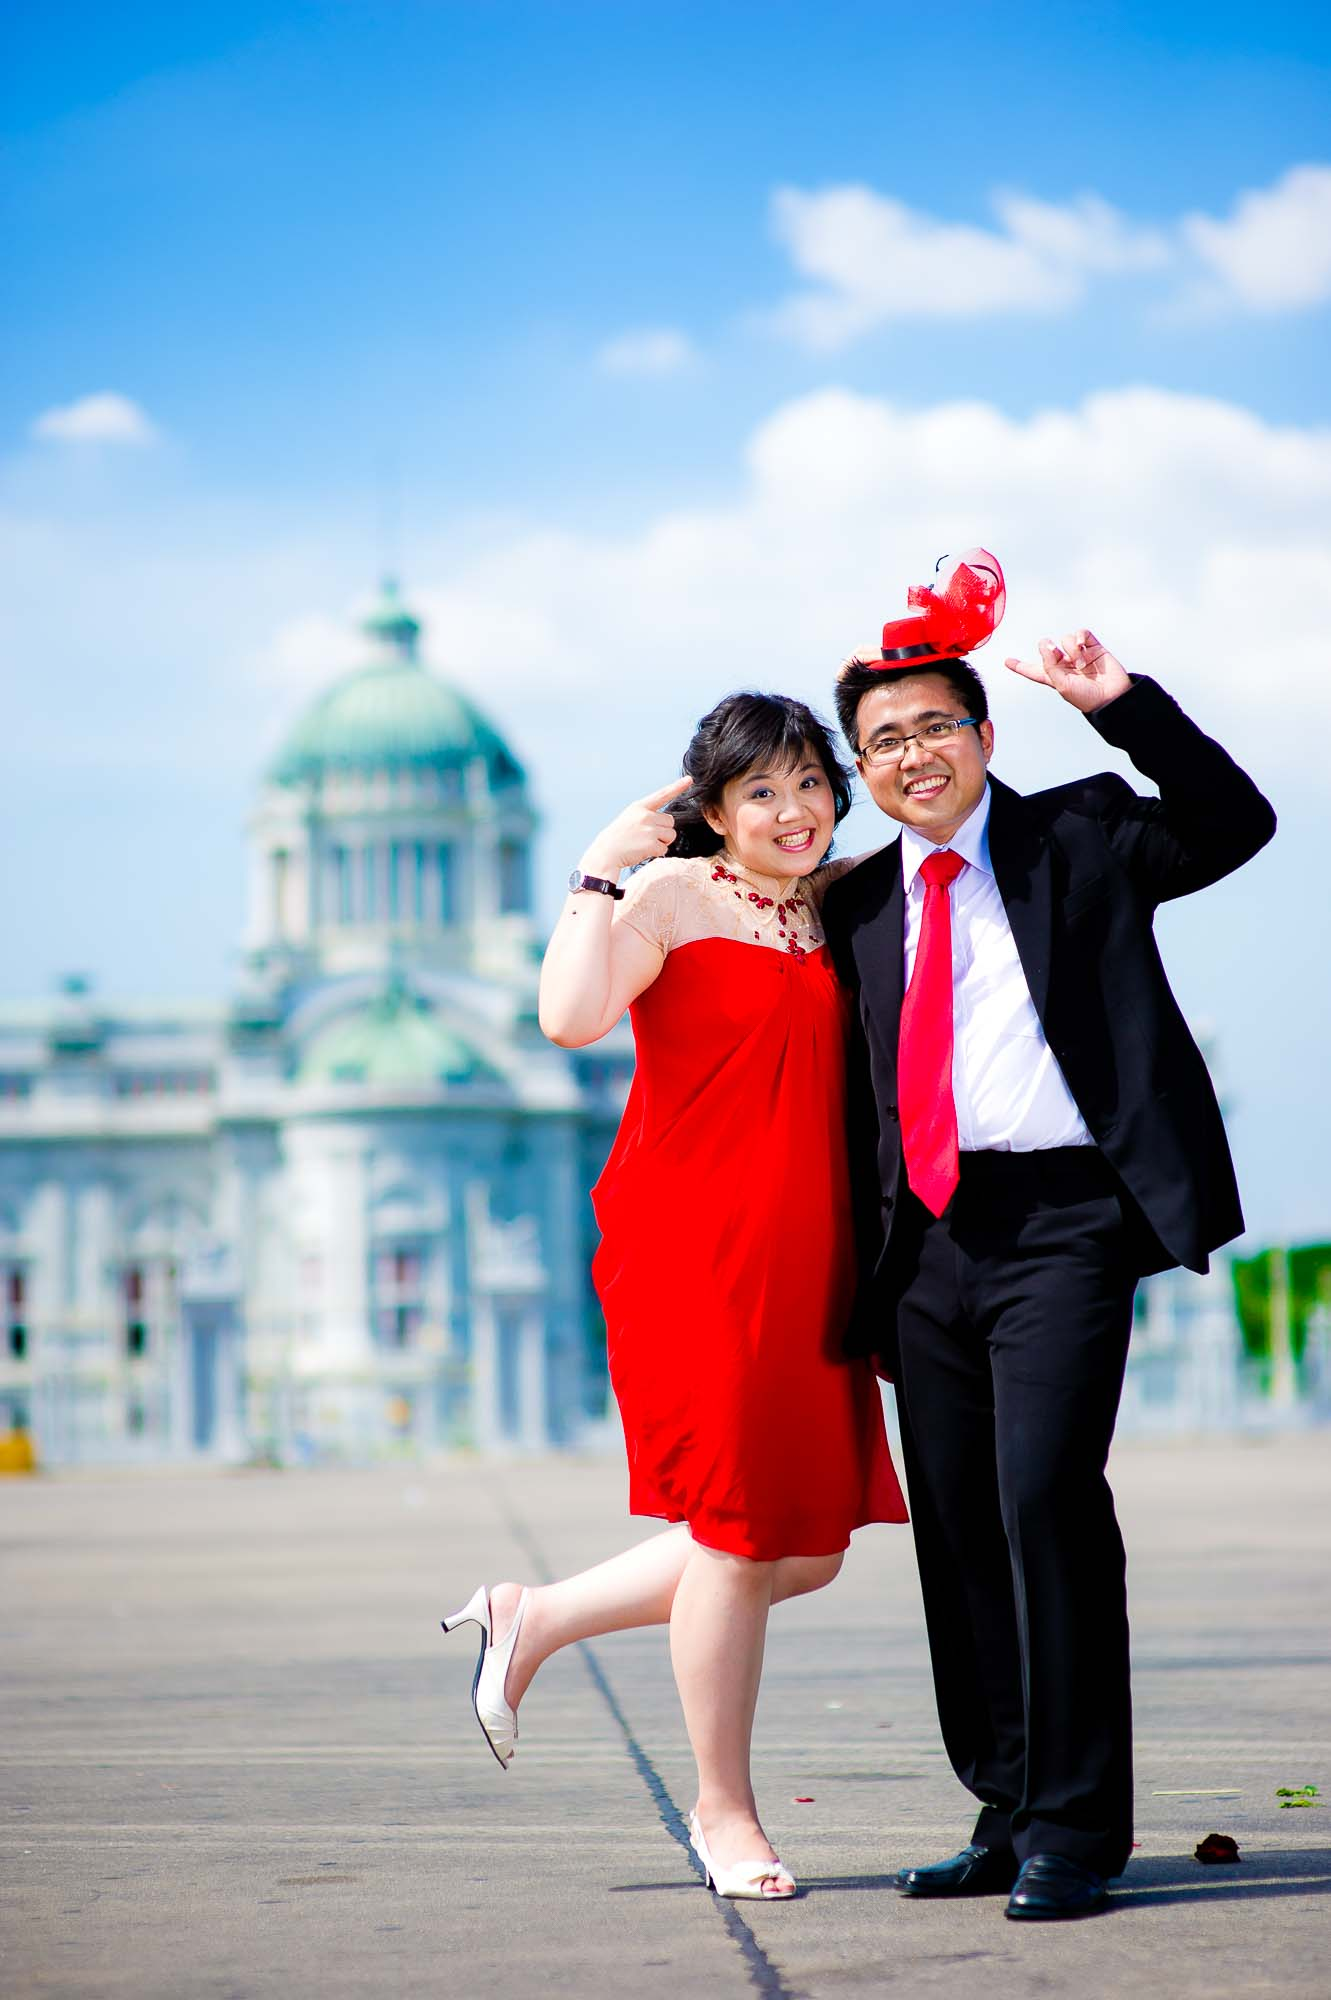 Thailand Bangkok Ananta Samakhom Throne Hall Wedding Photography | NET-Photography